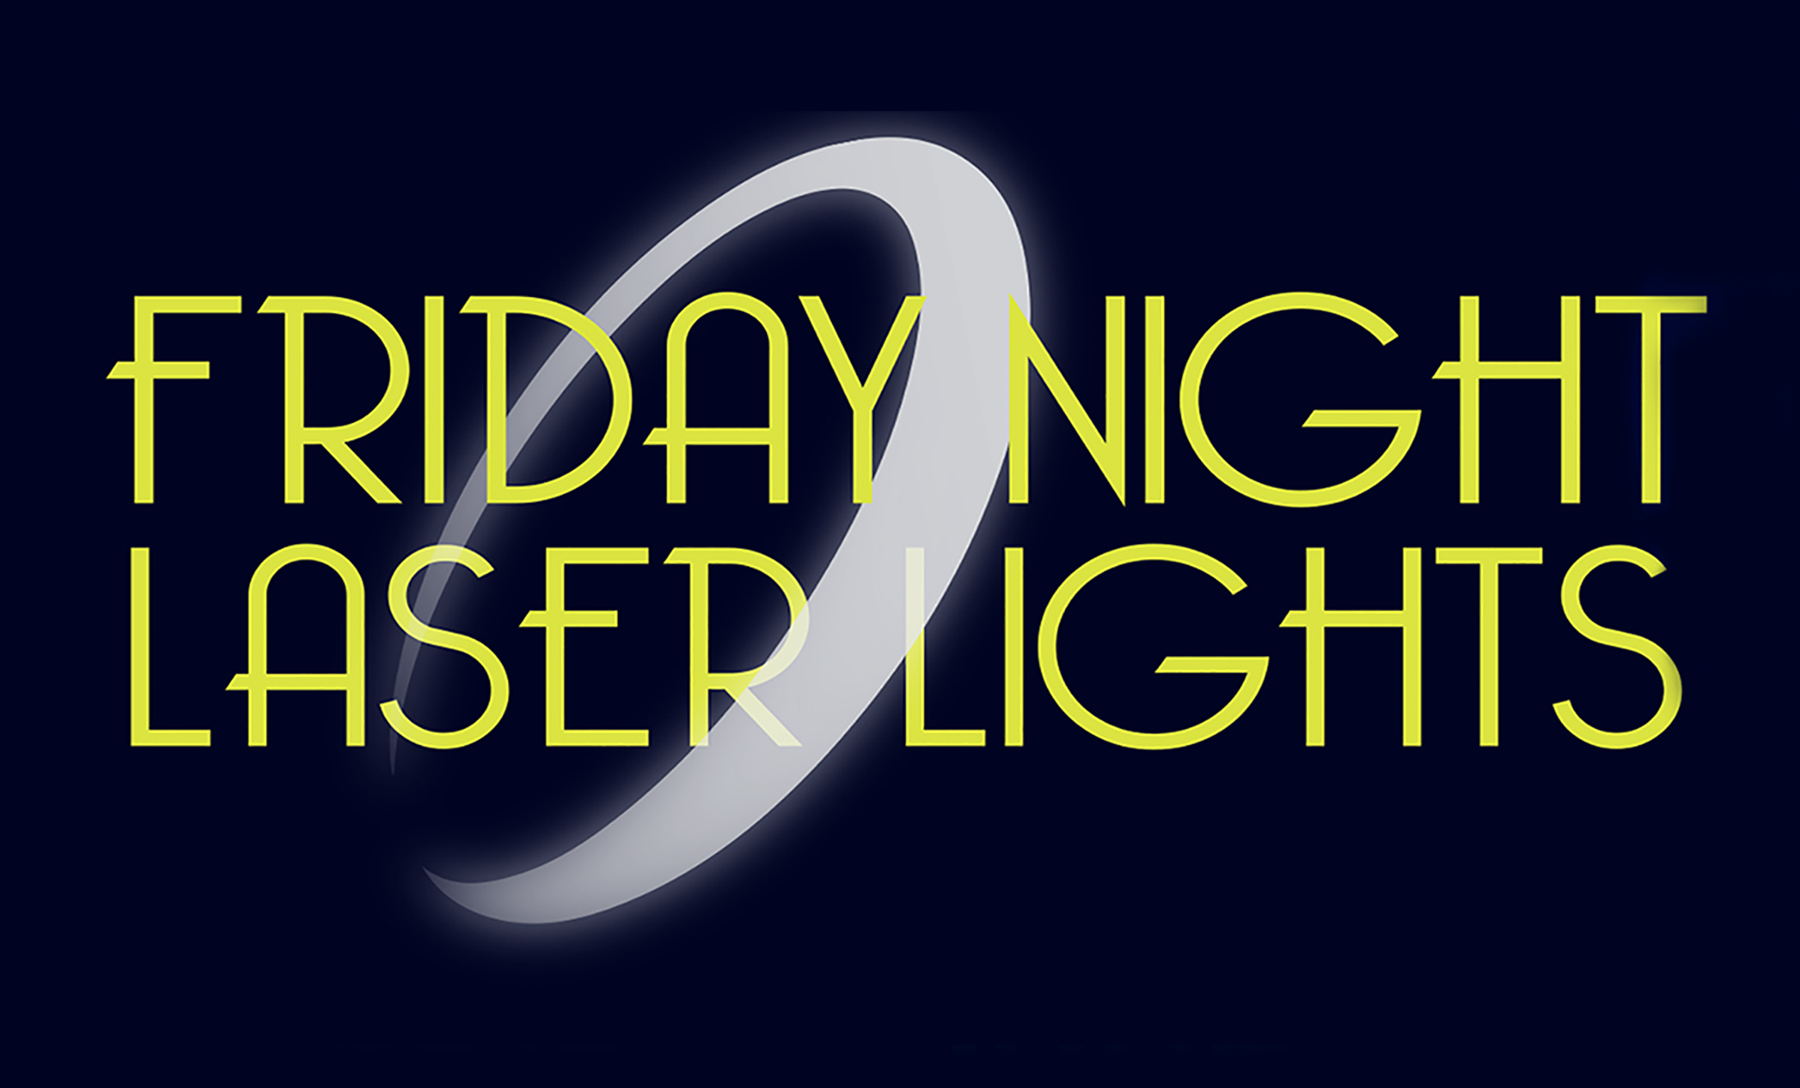 Friday Night Laser Lights, South Carolina State Museum, Columbia, Things To Do